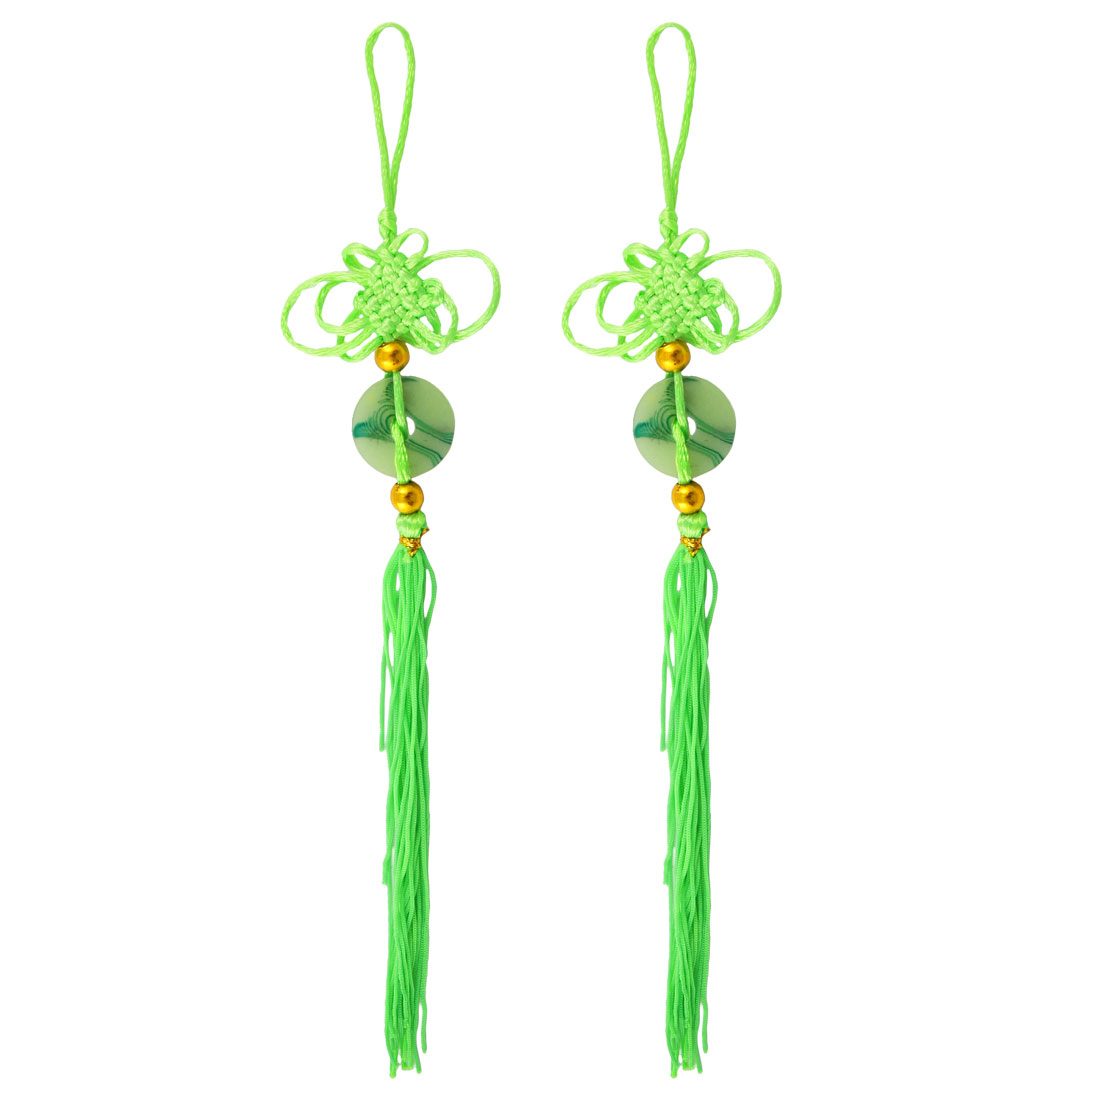 2 Pcs Faux Jade Pendant Hanger Fringed Chinese Knot Ornament Green